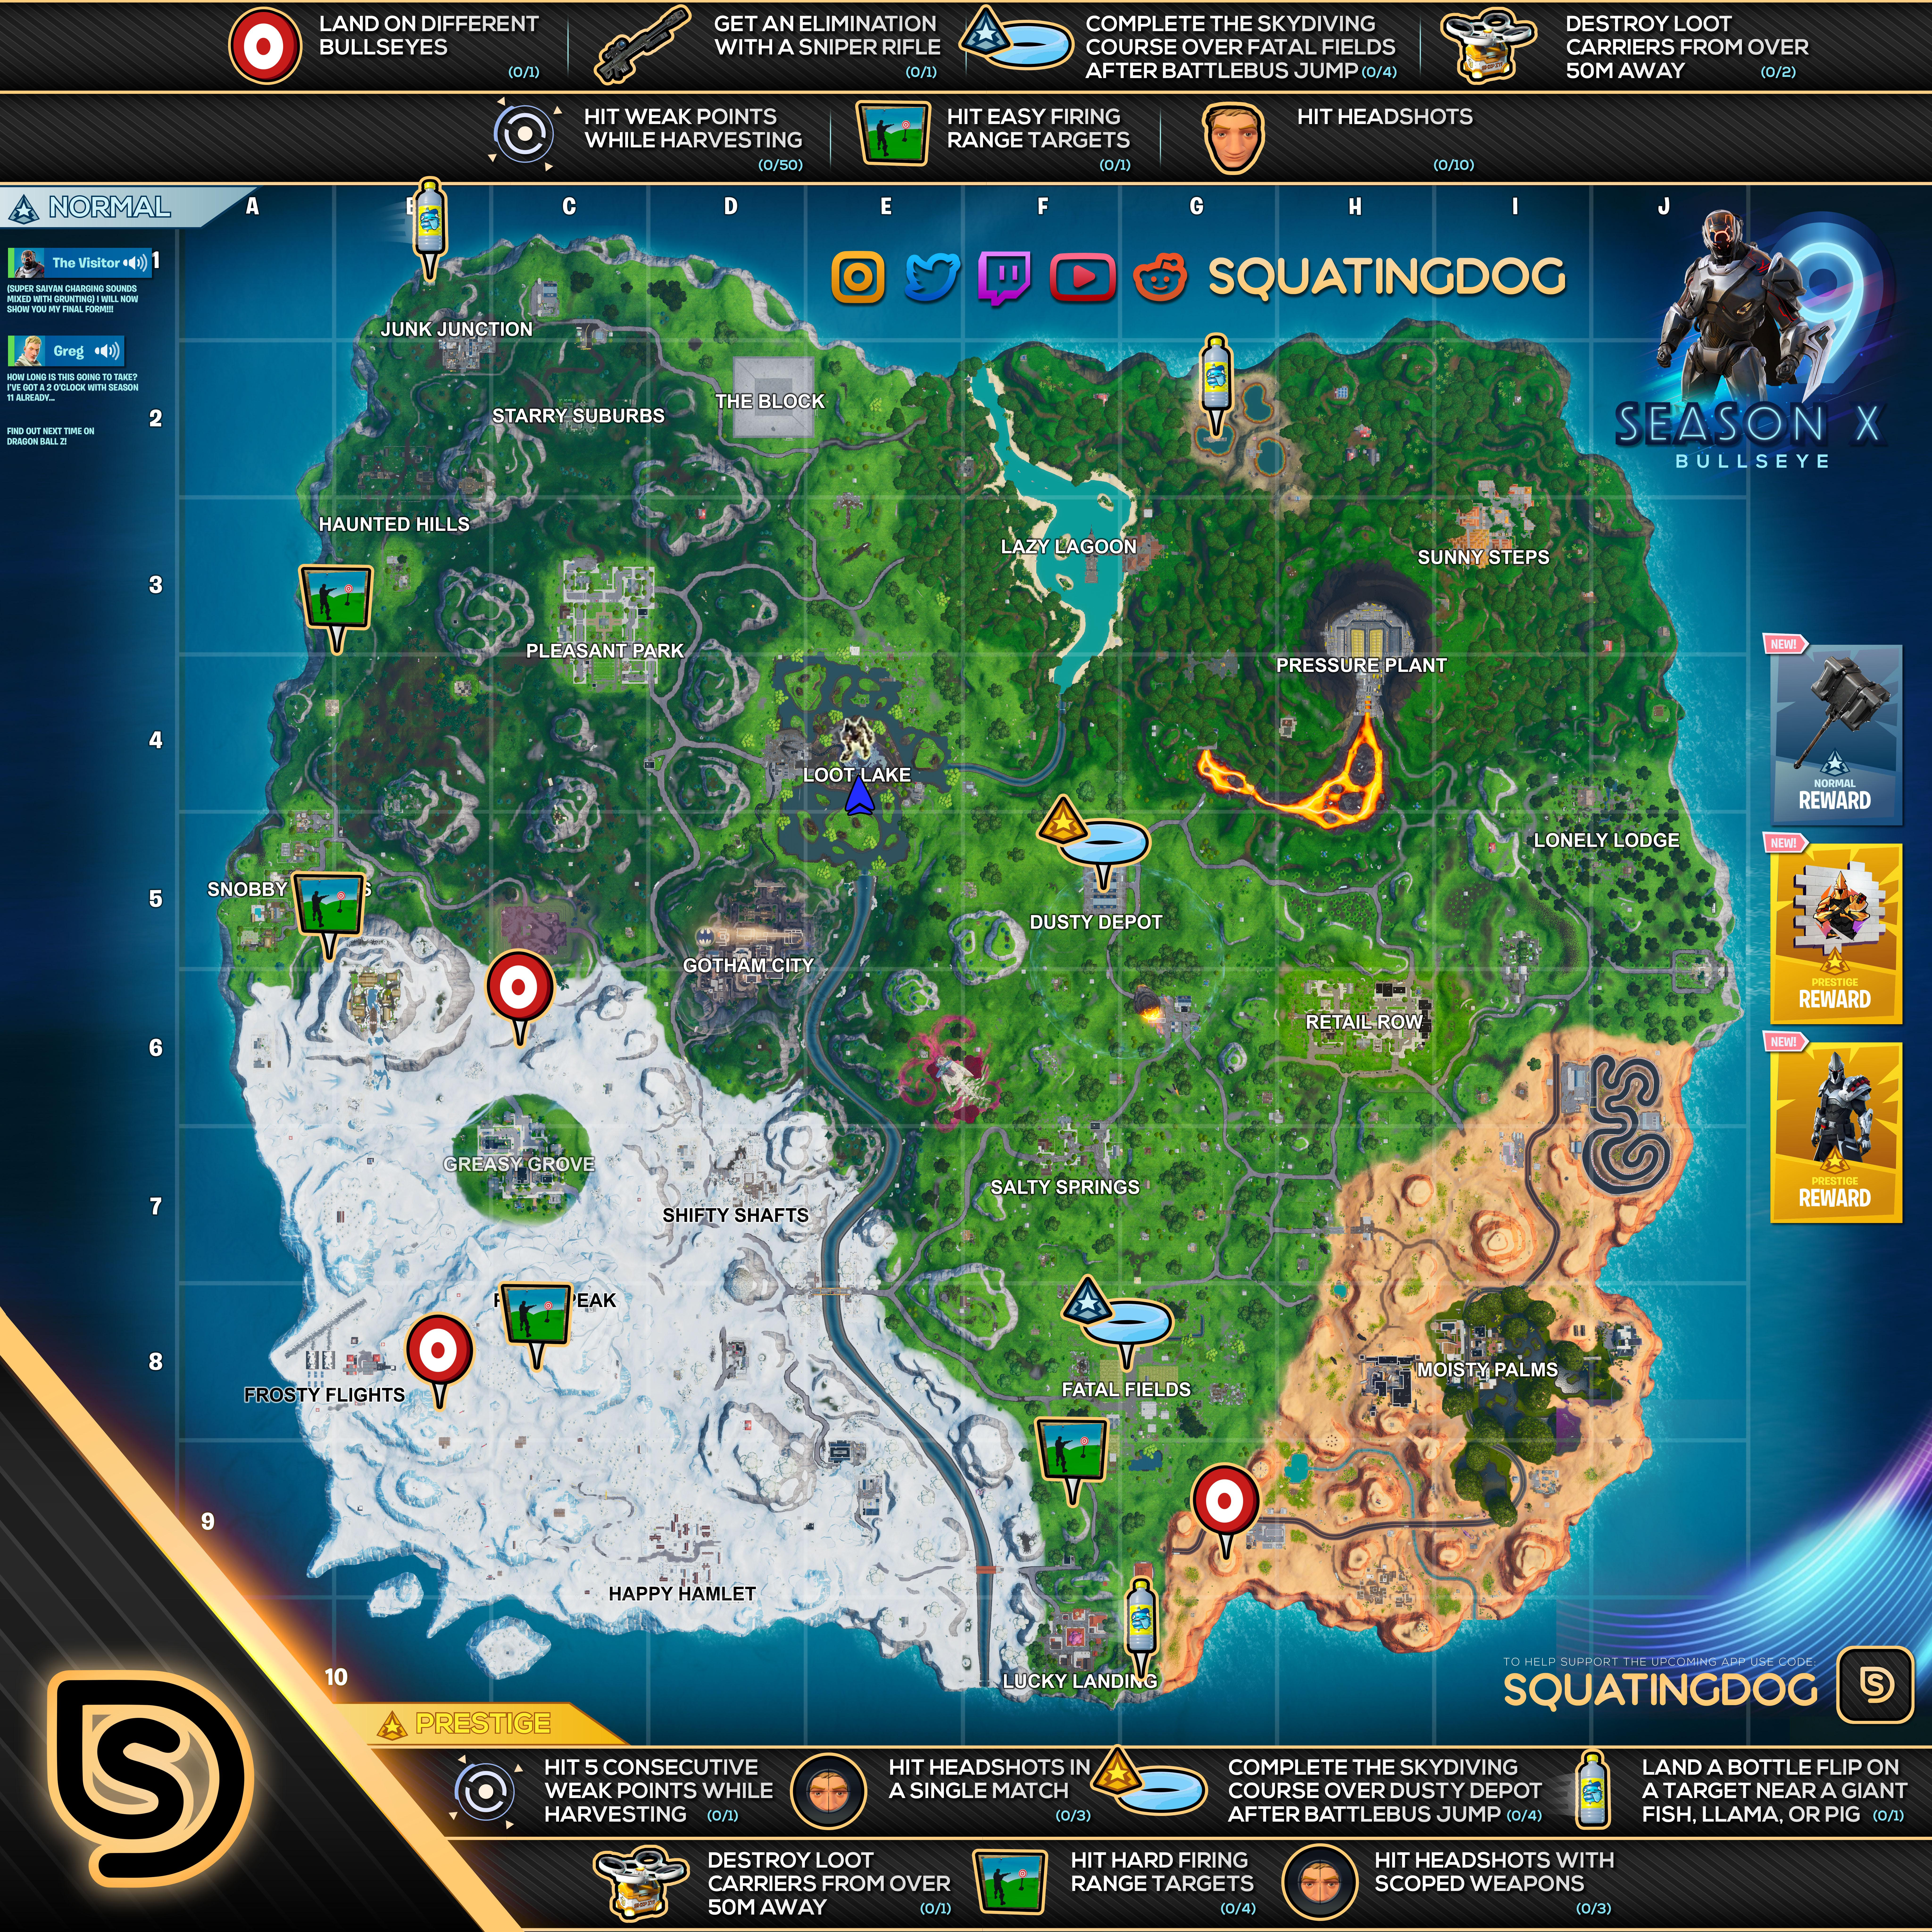 Fortnite Season 10 X Week 9 10 Bullseye Cheat Sheet Map